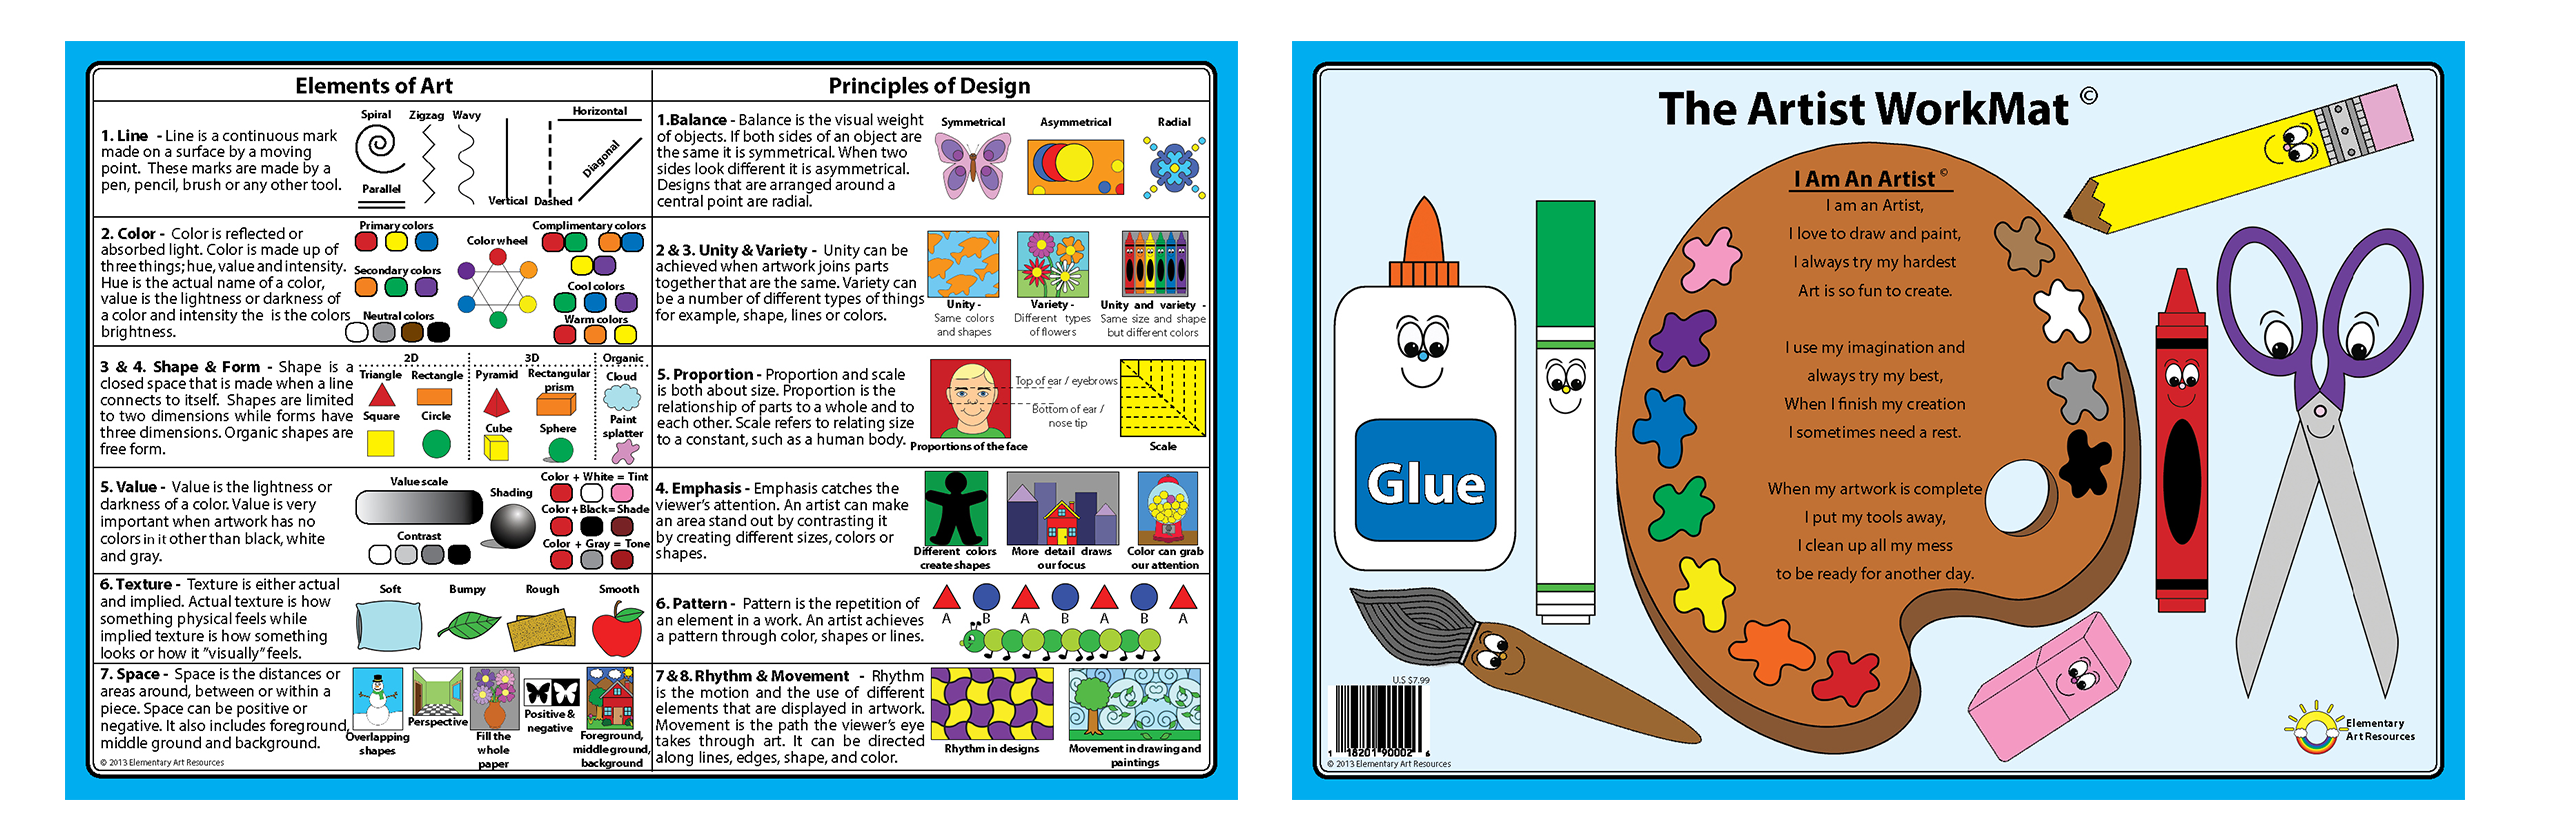 The Artist WorkMat - Elementary Art Resources